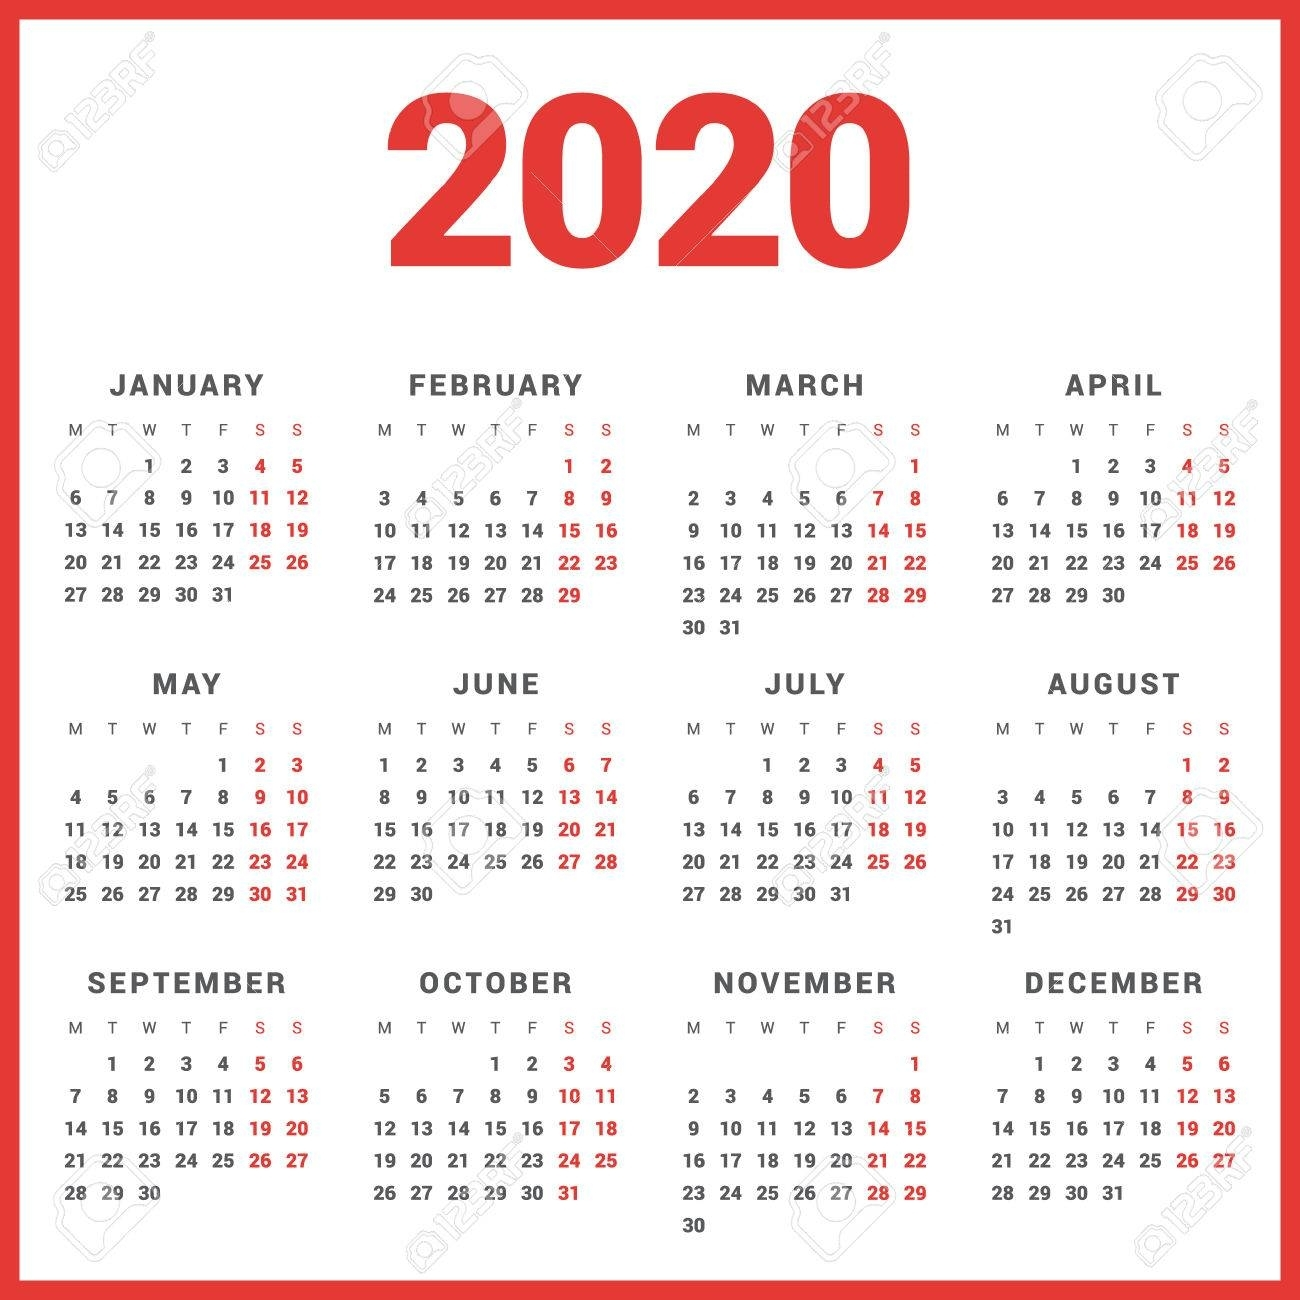 Monday Start Calendar 2020 - Colona.rsd7 regarding 2020 Calendar That Begins On Monday